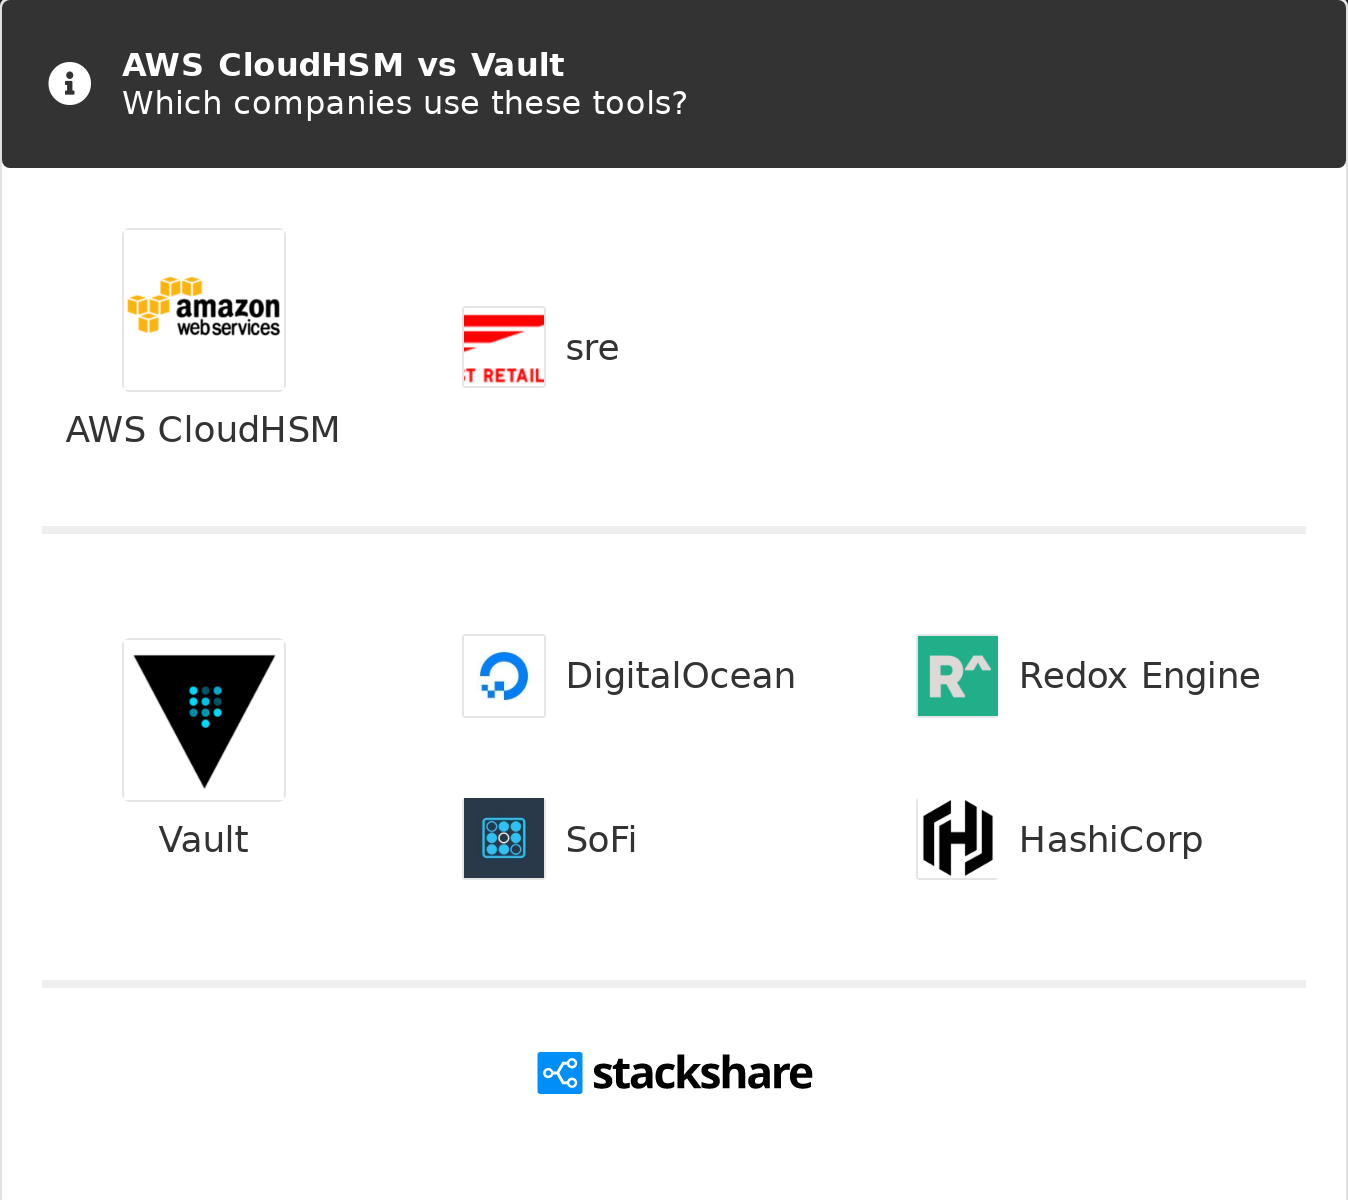 AWS CloudHSM vs Vault | What are the differences?